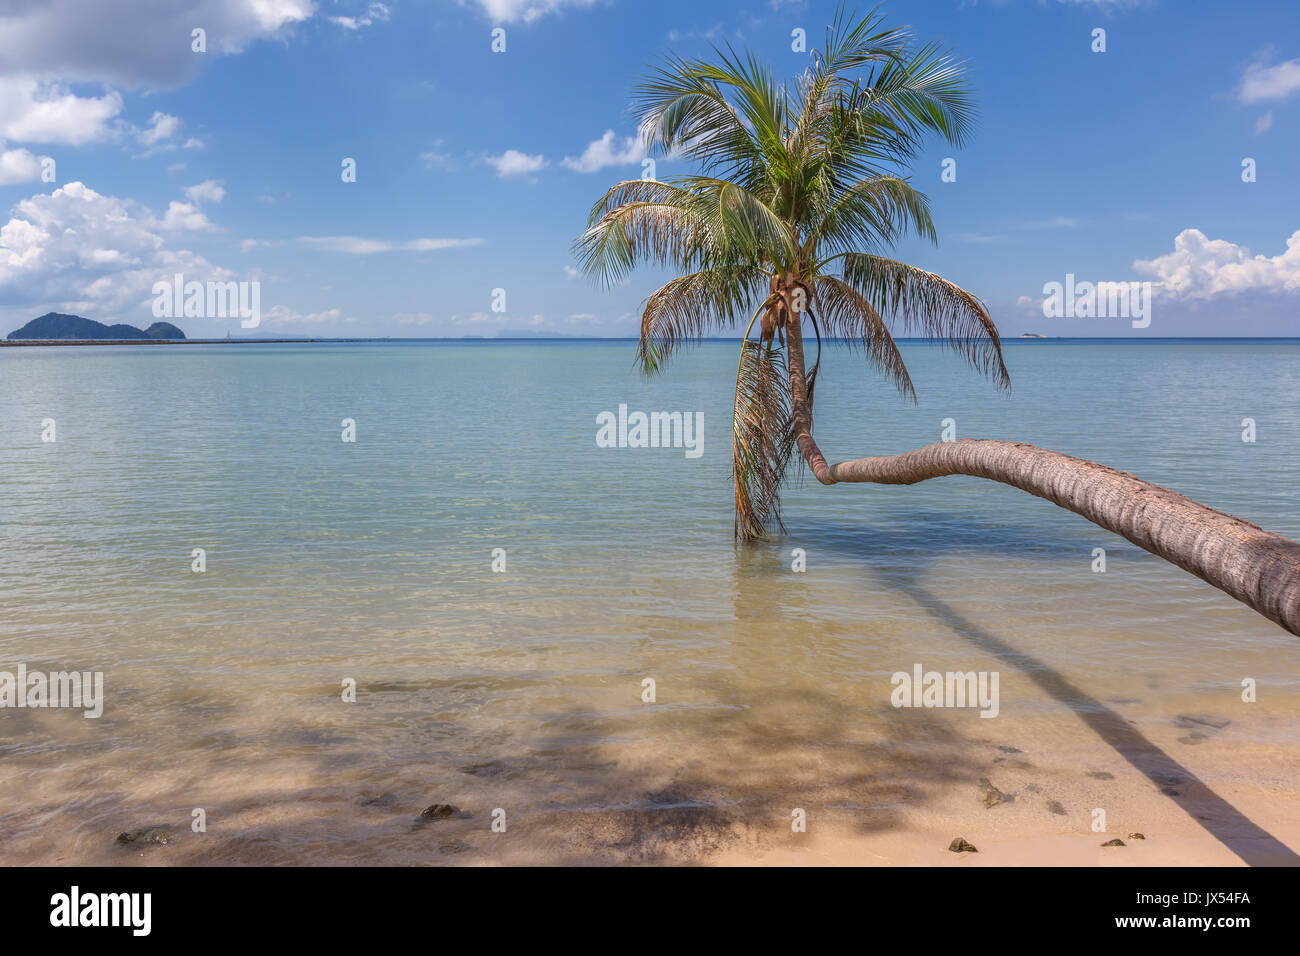 A lone coconut palm tree against a blue sky at Hin Kong Beach, Koh Phangan, Thailand - Stock Image